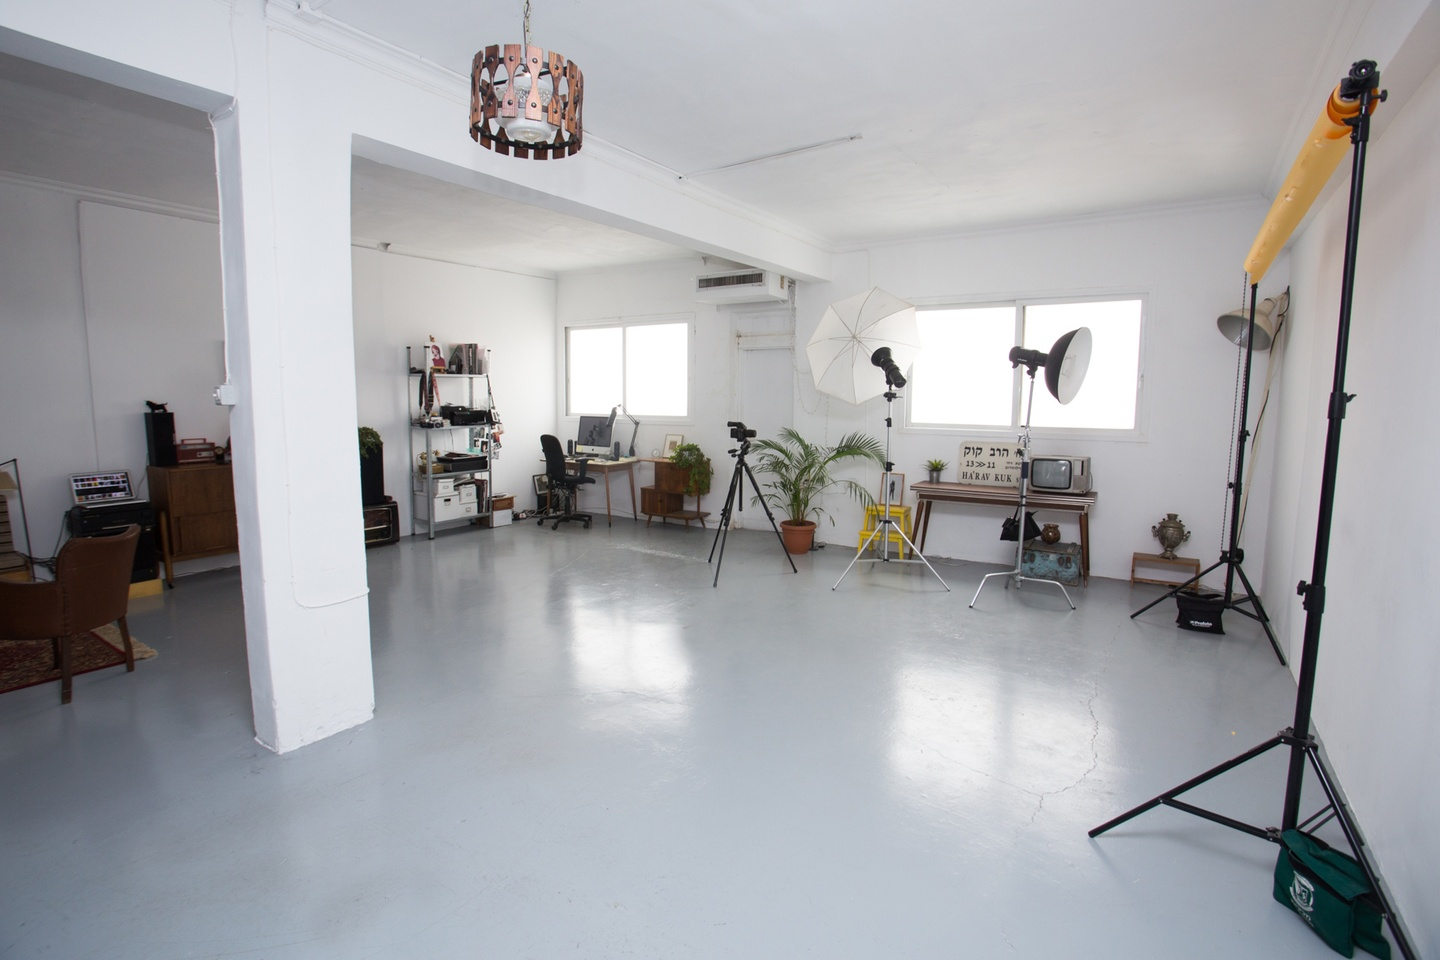 Tel Aviv workshop spaces Salle de réunion Spacious  photographers loft for events and meetings image 0